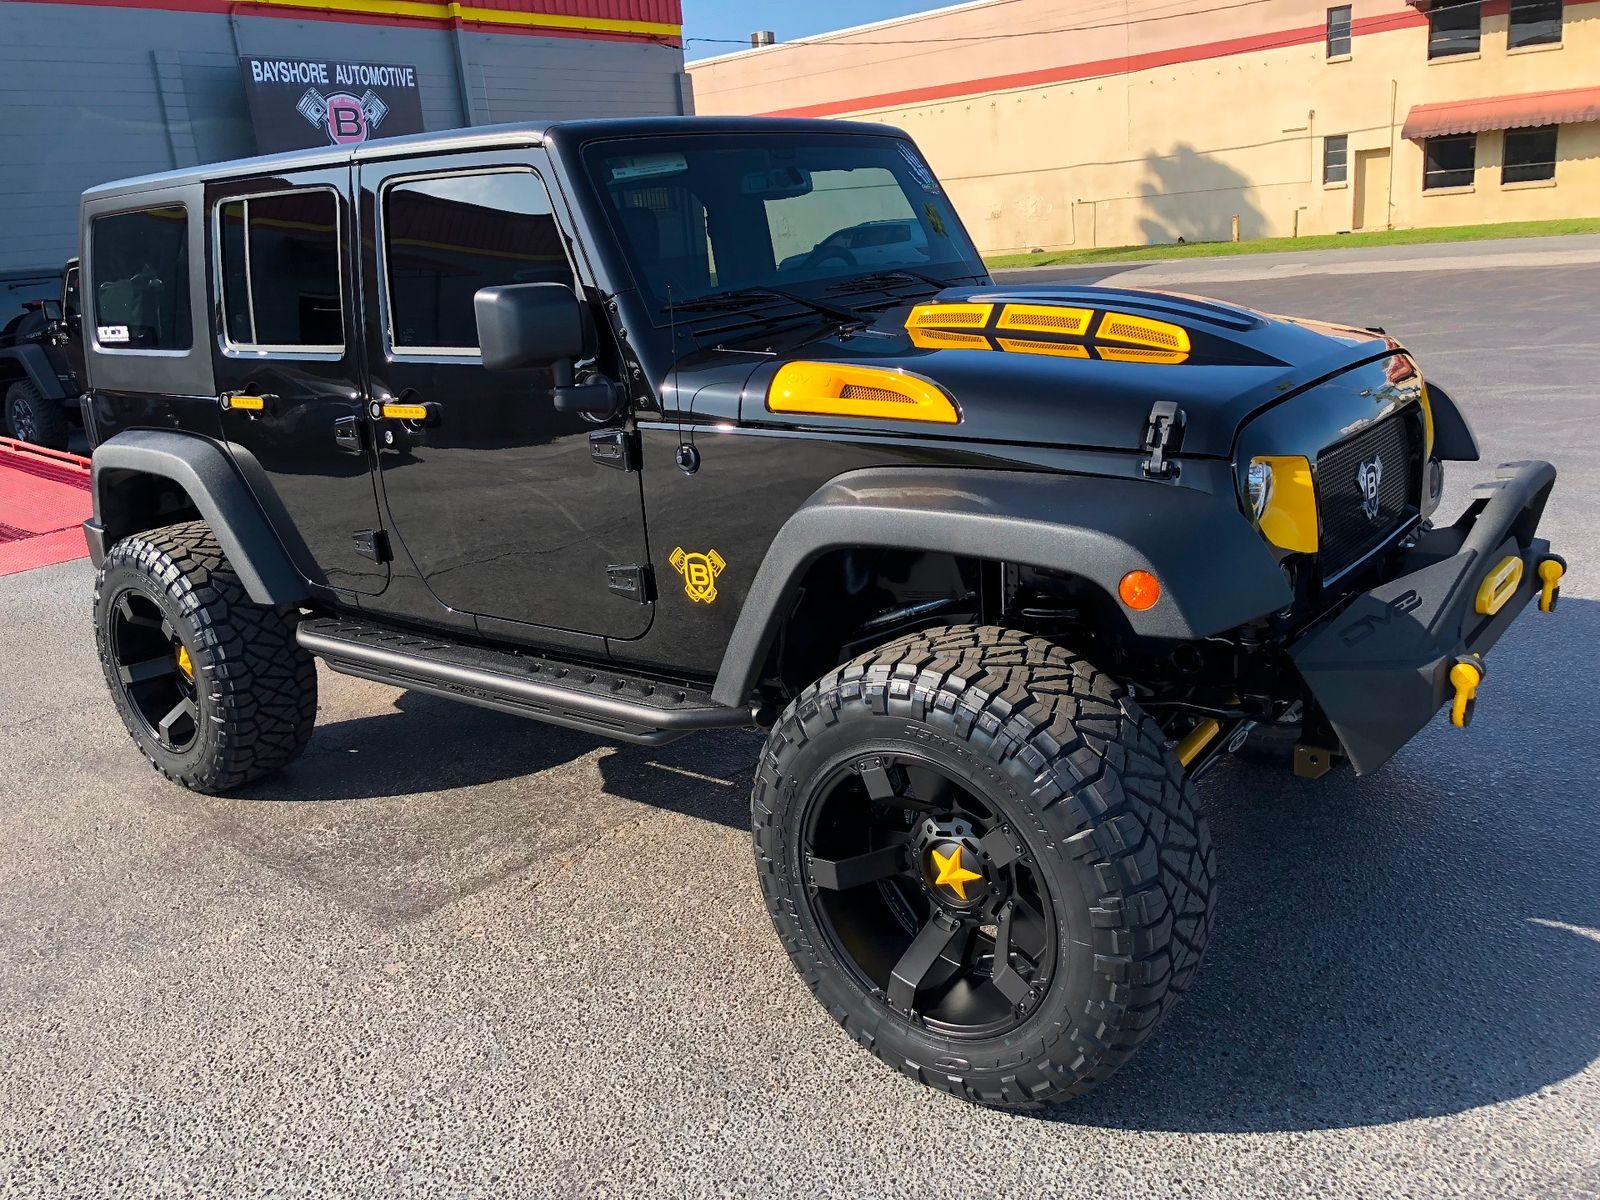 2018 jeep wrangler jk unlimited rubicon custom lifted 4x4 florida bayshore automotive. Black Bedroom Furniture Sets. Home Design Ideas